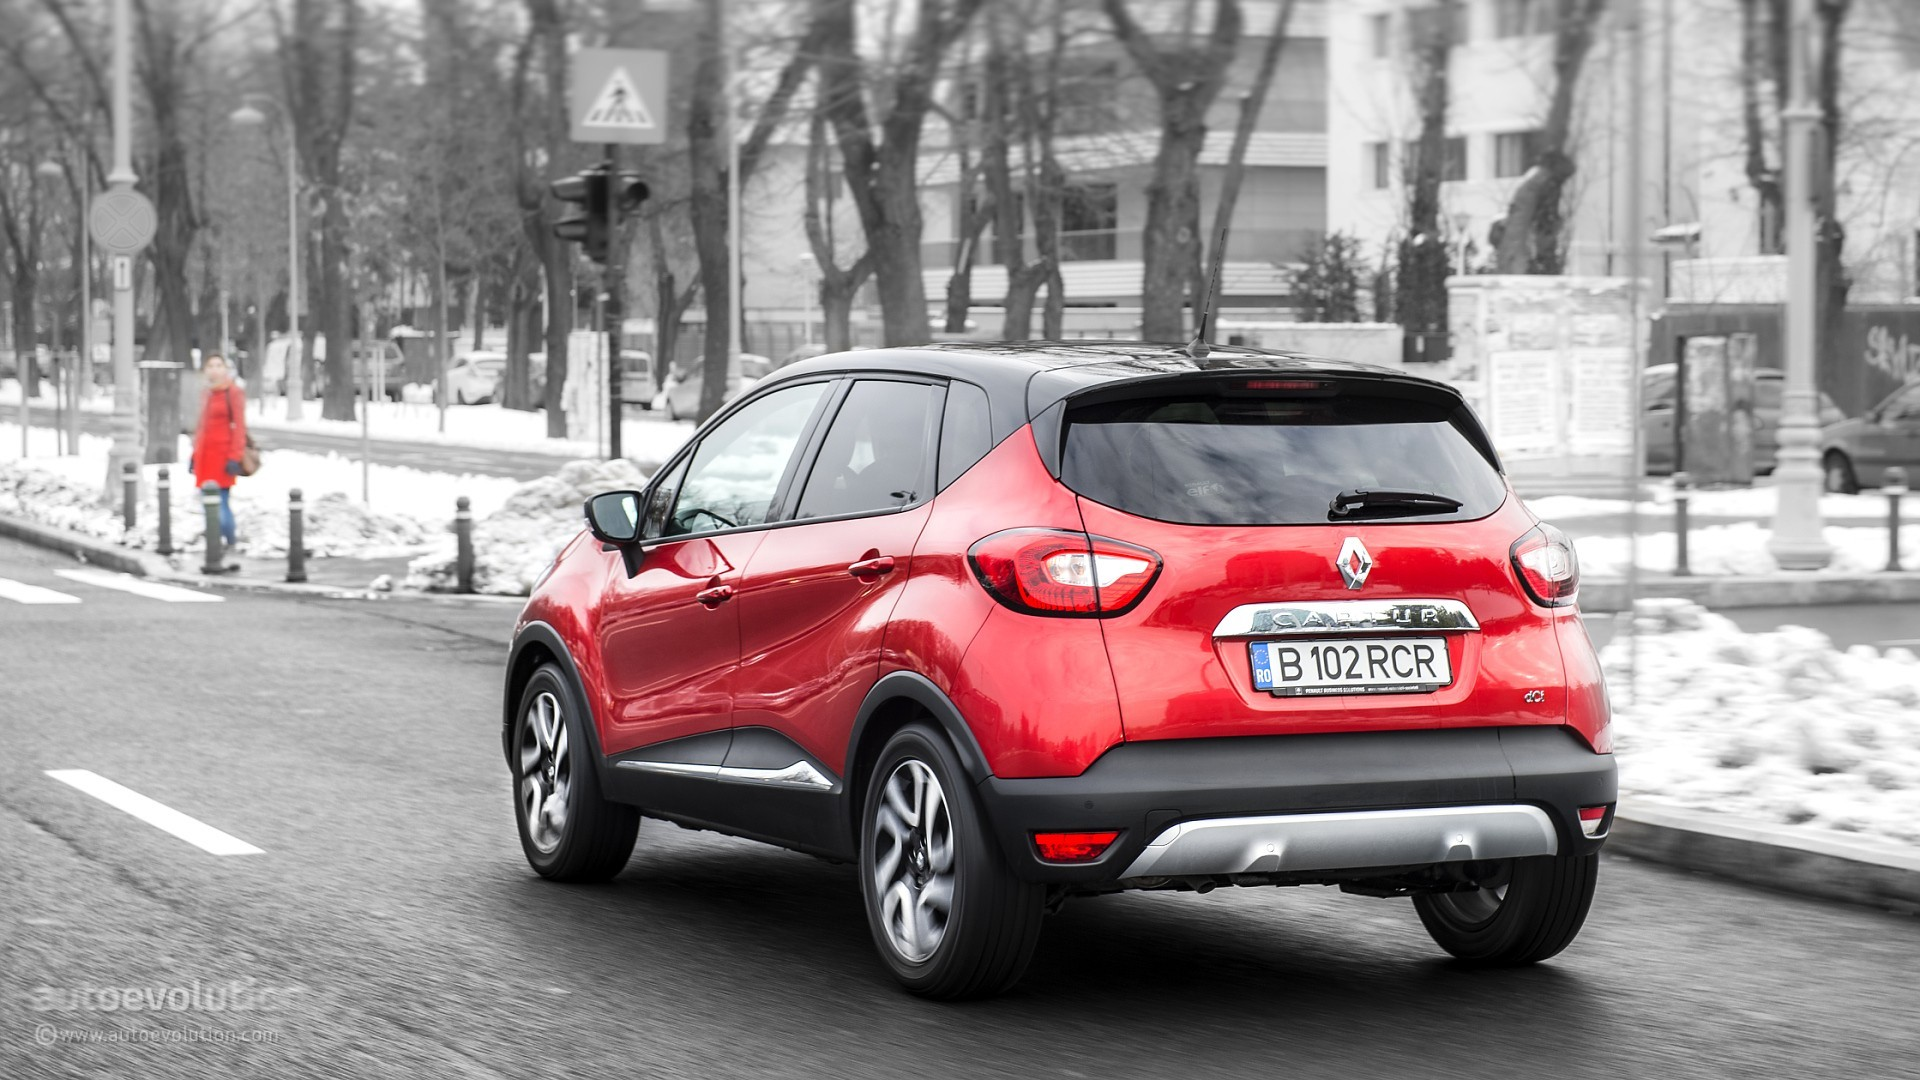 2015 Renault Captur Tested: Why Small Crossovers Are so Popular ...